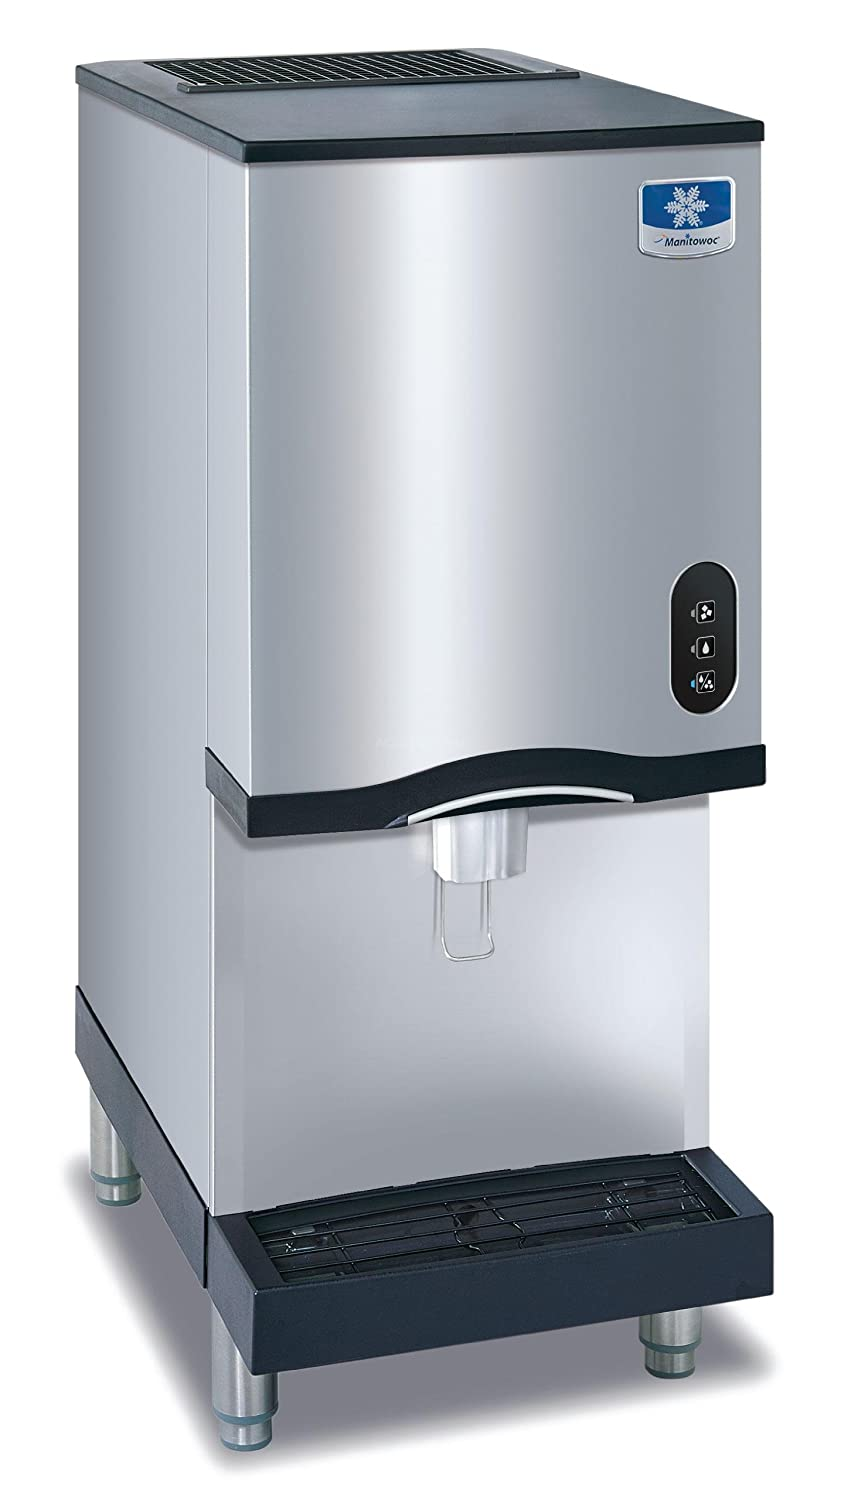 Pebble Ice Machine Amazoncom Manitowoc Rns 12a Countertop Nugget Ice Maker And